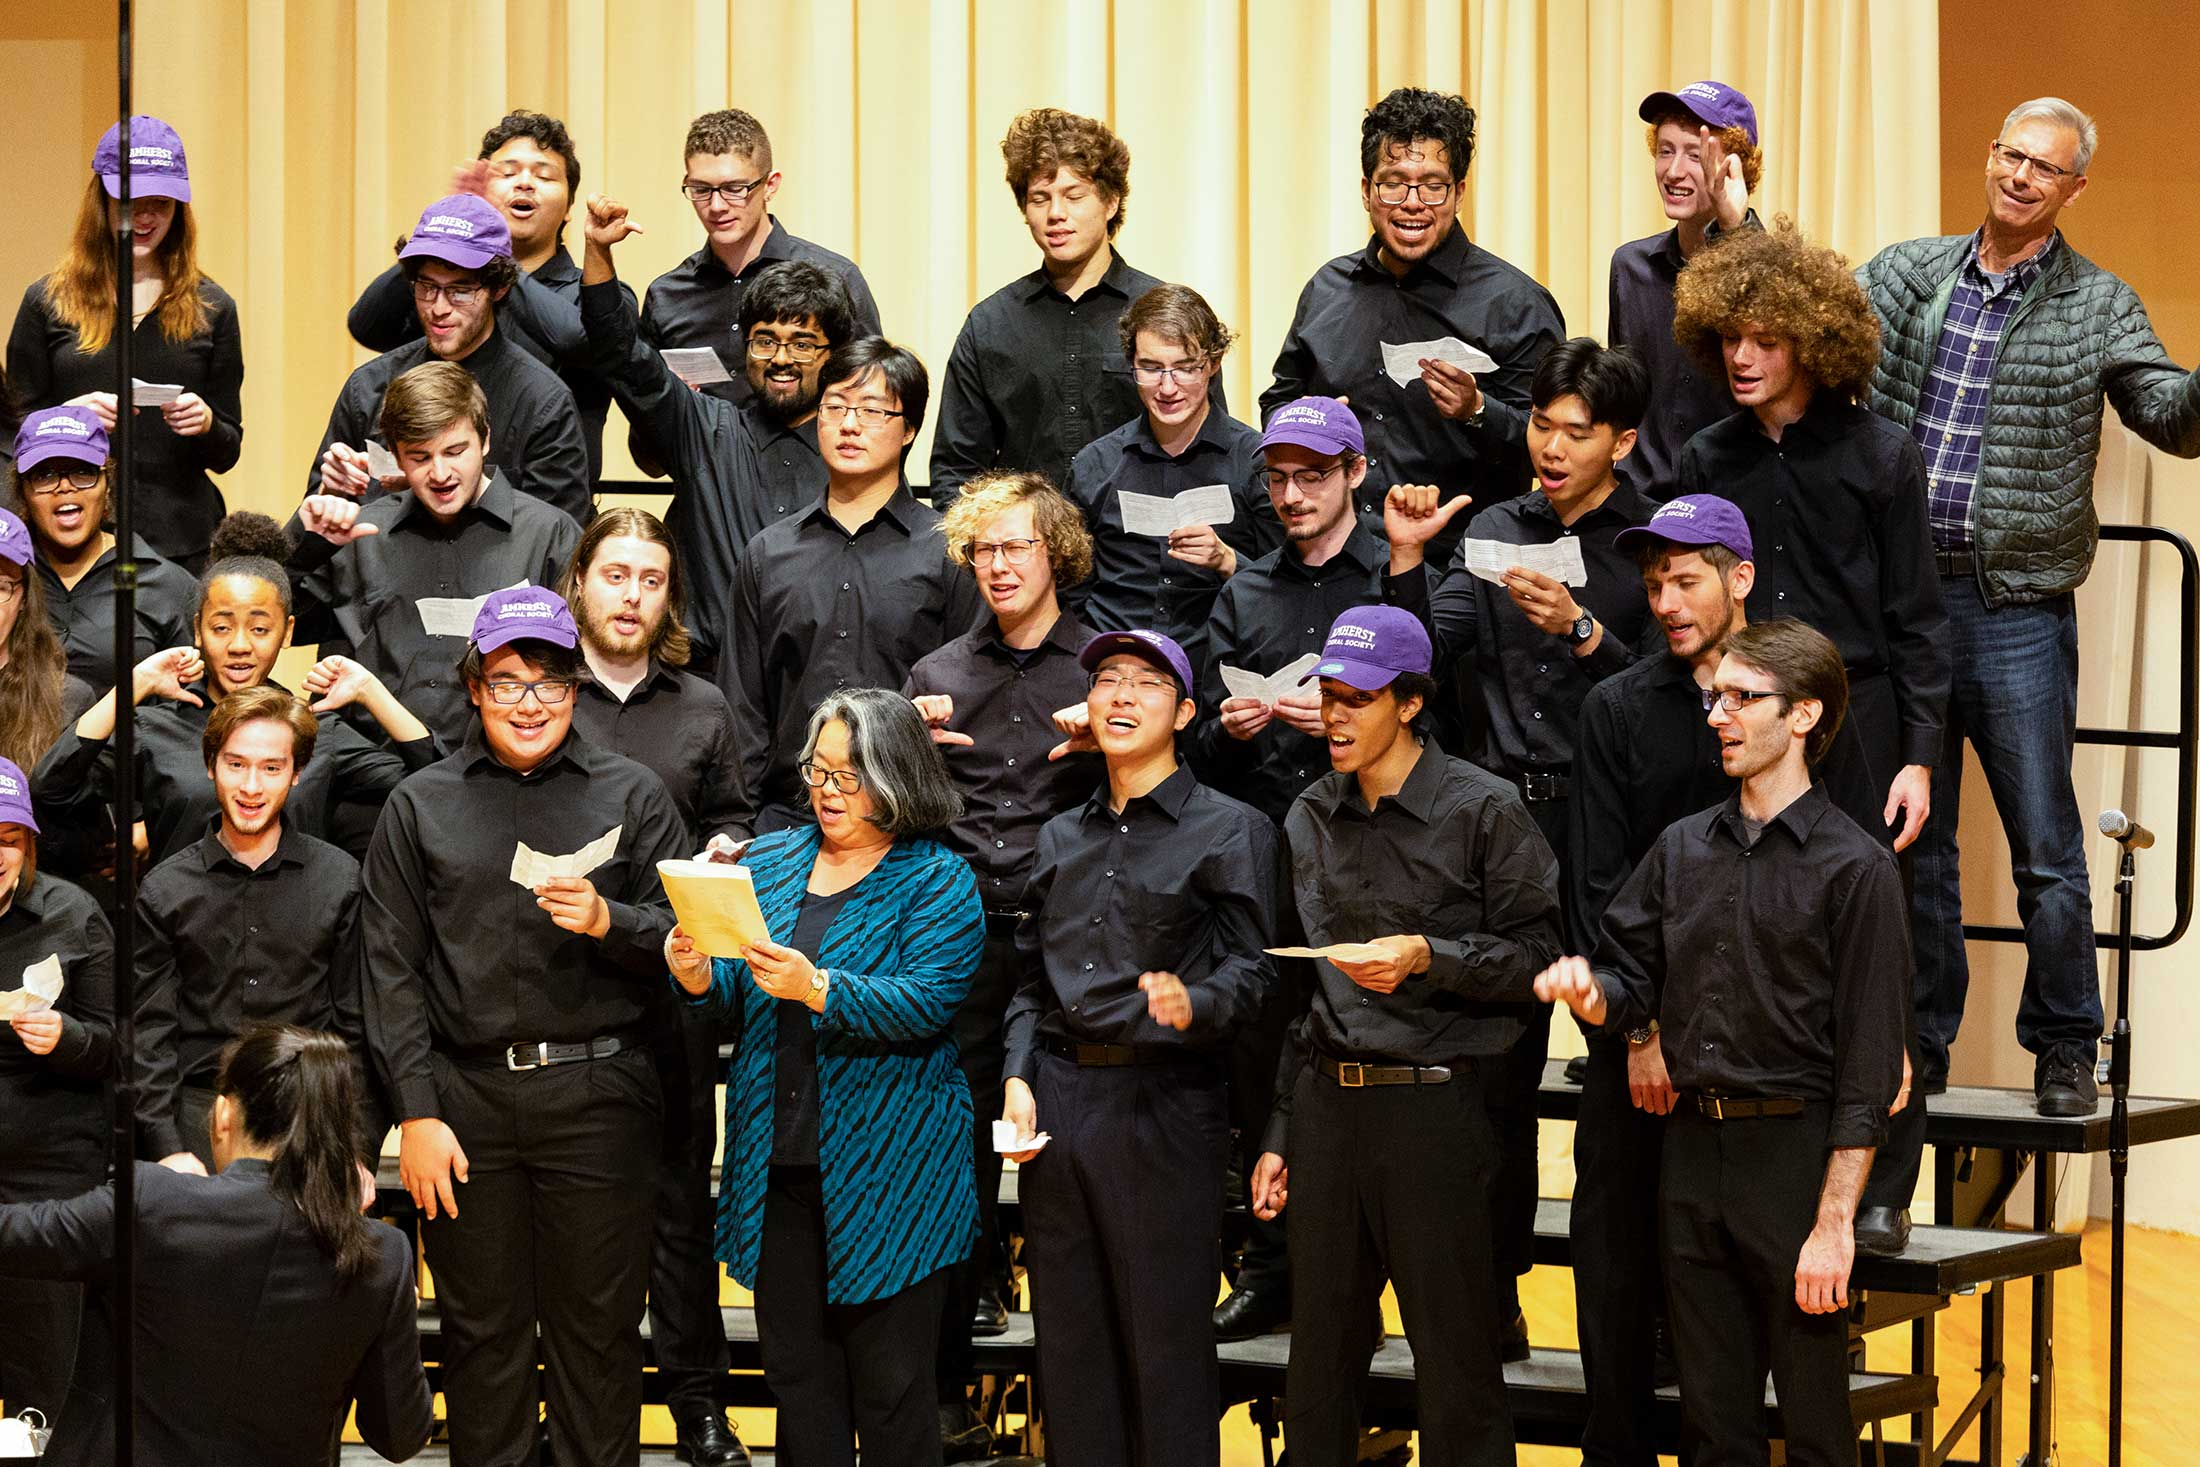 The Amherst College Choral Society, plus a few parents, performing during Family Weekend